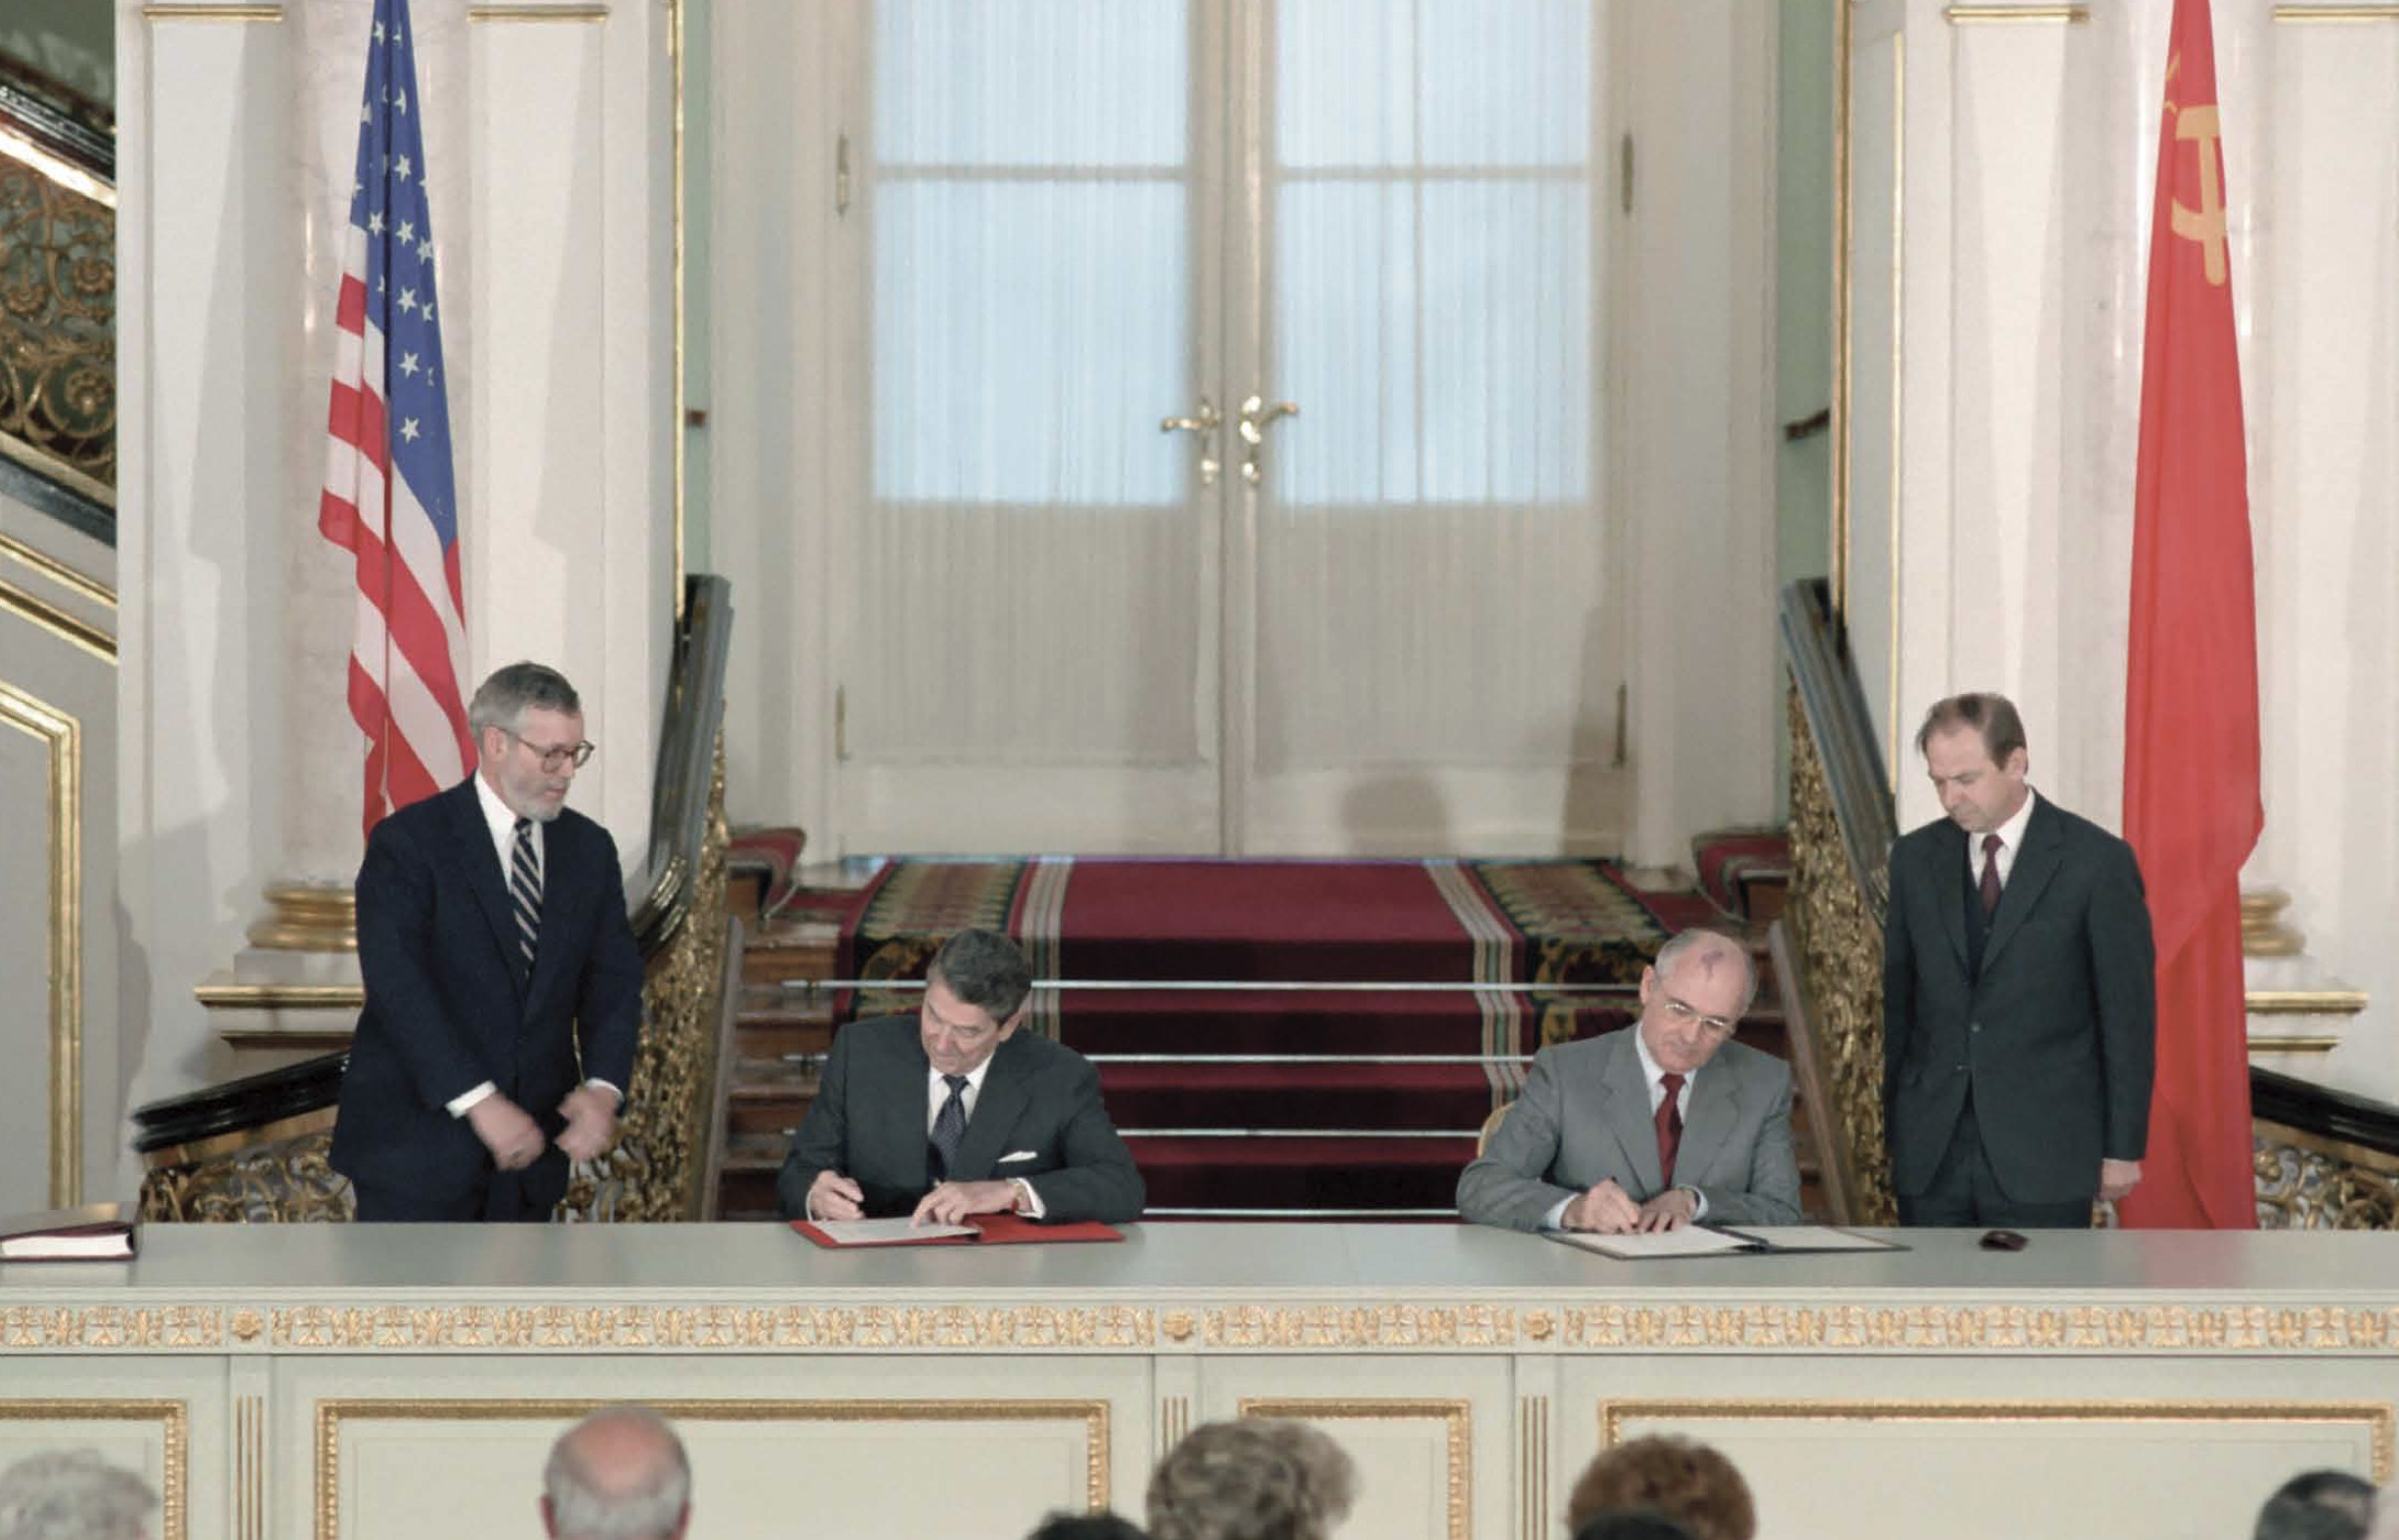 President Reagan and Soviet General Secretary Gorbachev are signing the INF treaty ratification at the Grand Kremlin Palace during the Moscow Summit on June 1, 1988. By the treaty's deadline of June 1, 1991, a total of 2,692 of short and intermediate range ground launched missiles had been destroyed, 846 by the U.S. and 1,846 by the Soviet Union.  This was much more unequal in number of INF warheads destroyed. Under the treaty both nations were allowed to inspect each other's military installations.